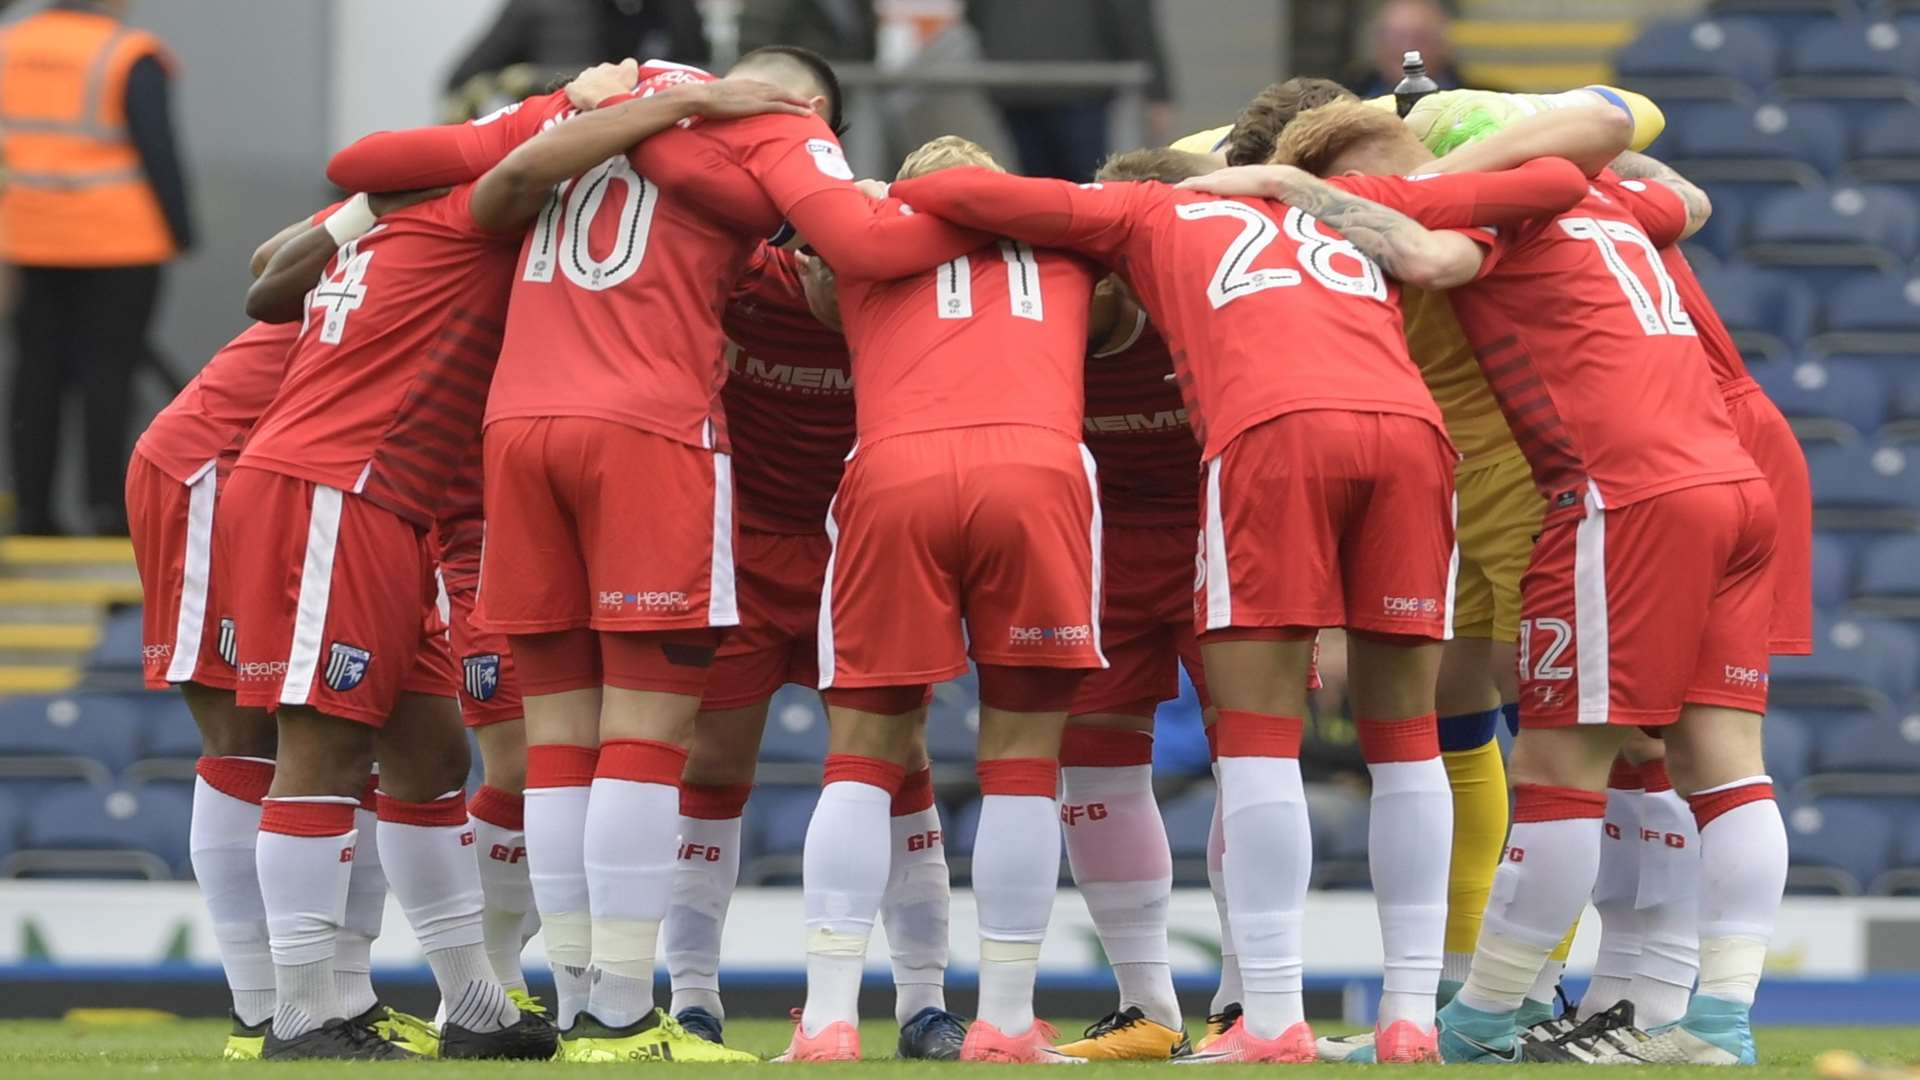 Final words of encouragement before kick-off at Ewood Park Picture: Barry Goodwin